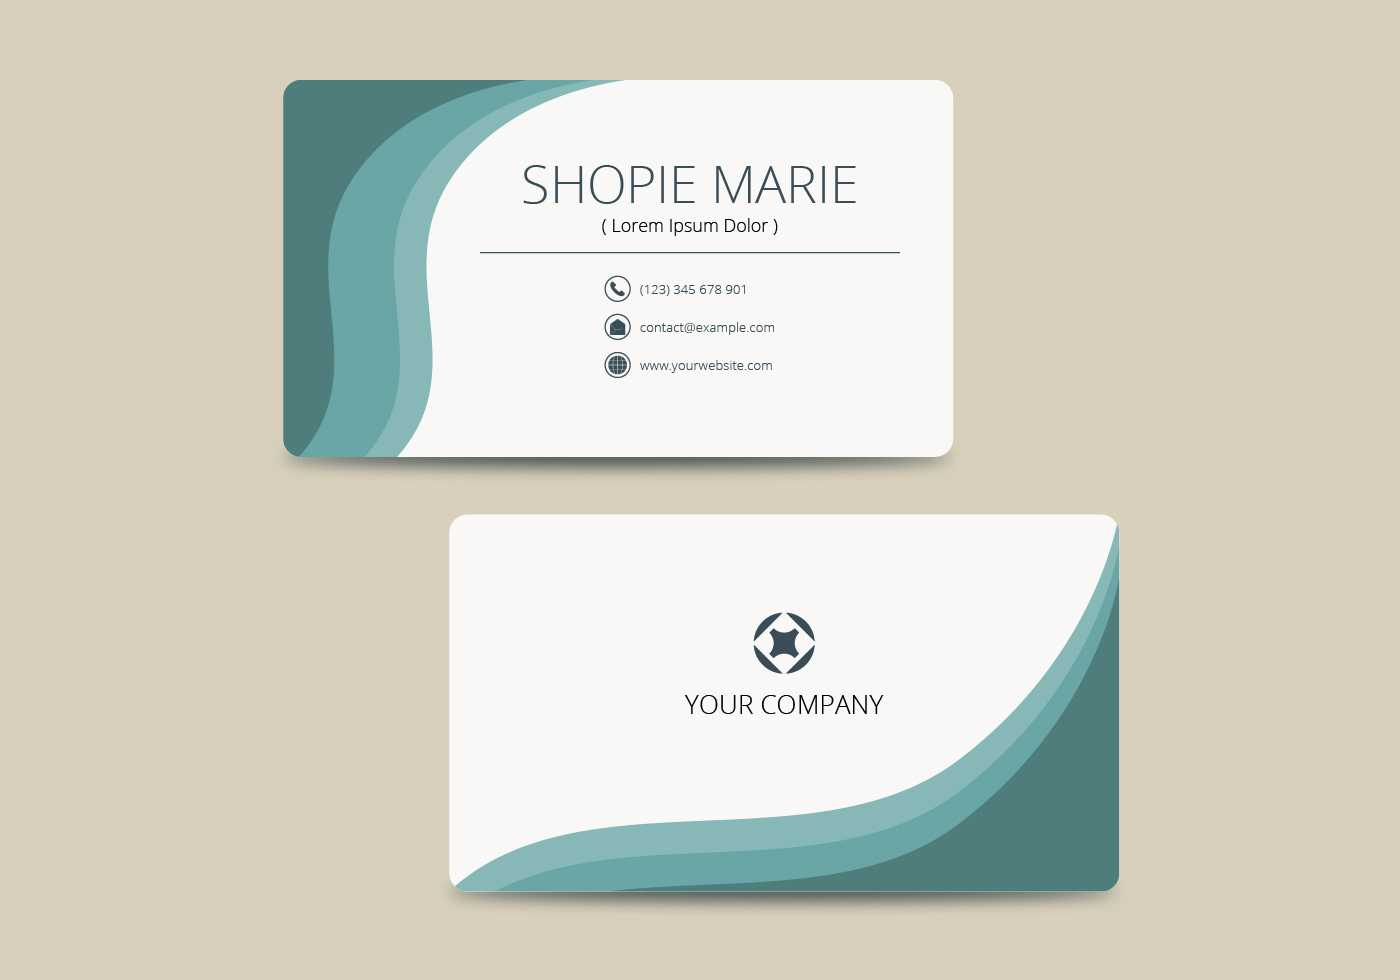 Teal Business Card Template Vector - Download Free Vectors Intended For Buisness Card Template